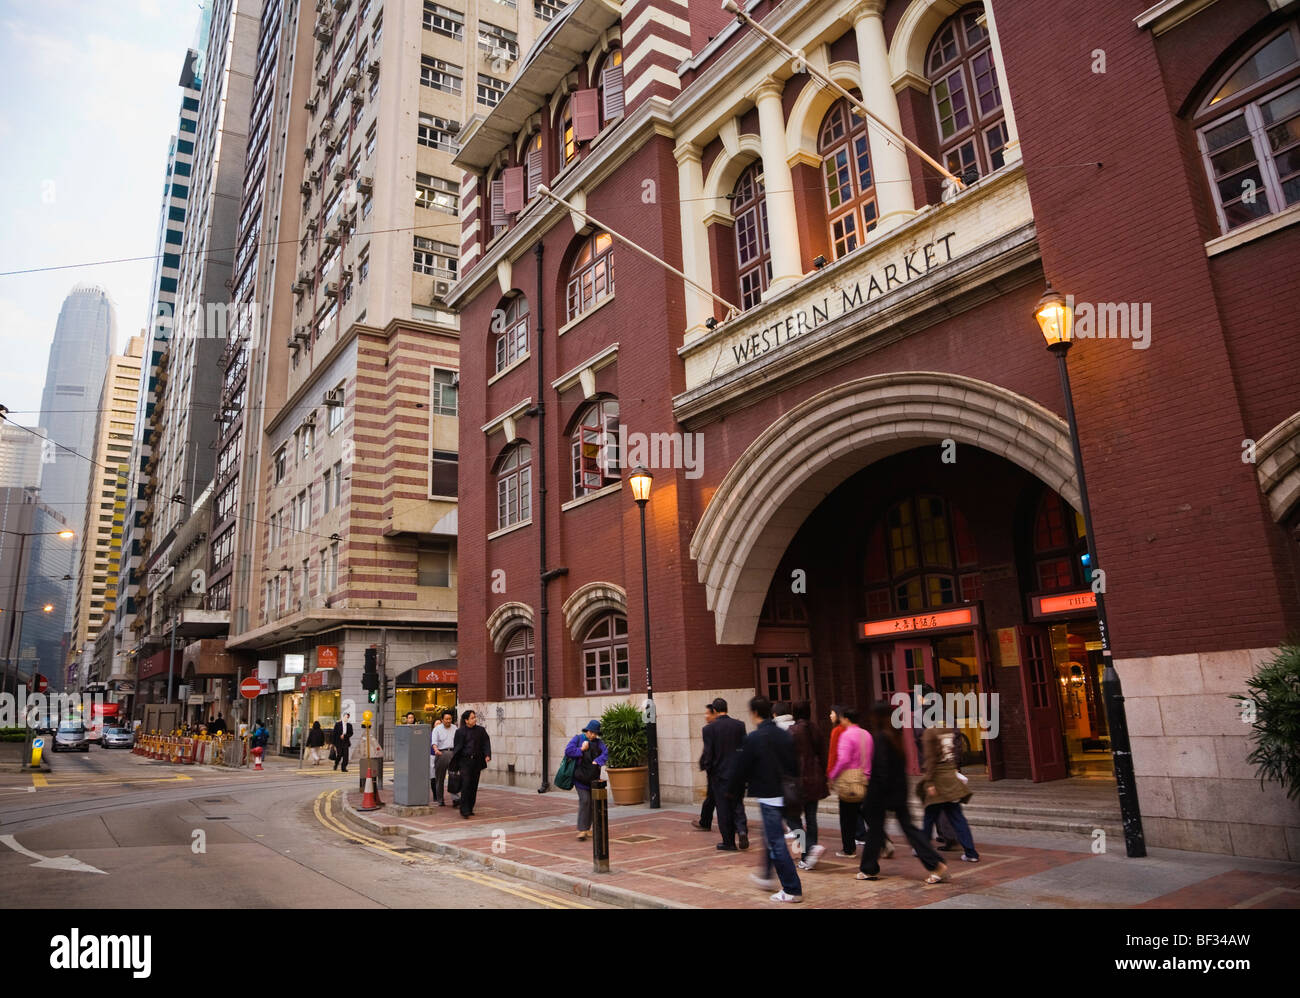 The Western Market is a historic landmark in Sheung Wan District with the IFC building beyond, Hong Kong, China - Stock Image